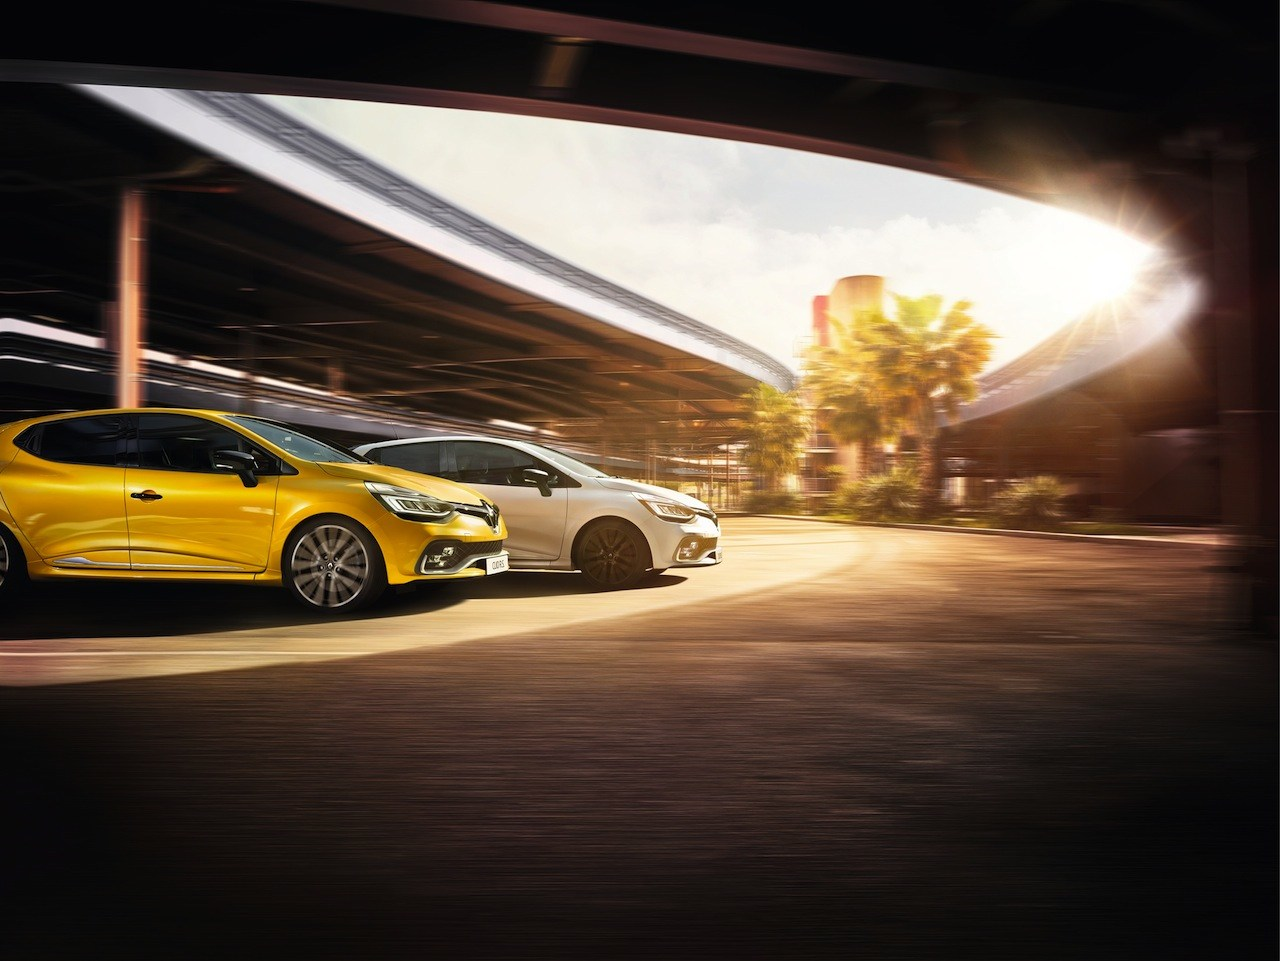 Renault Clio RS 200 2017 y Renault Clio RS 220 Trophy